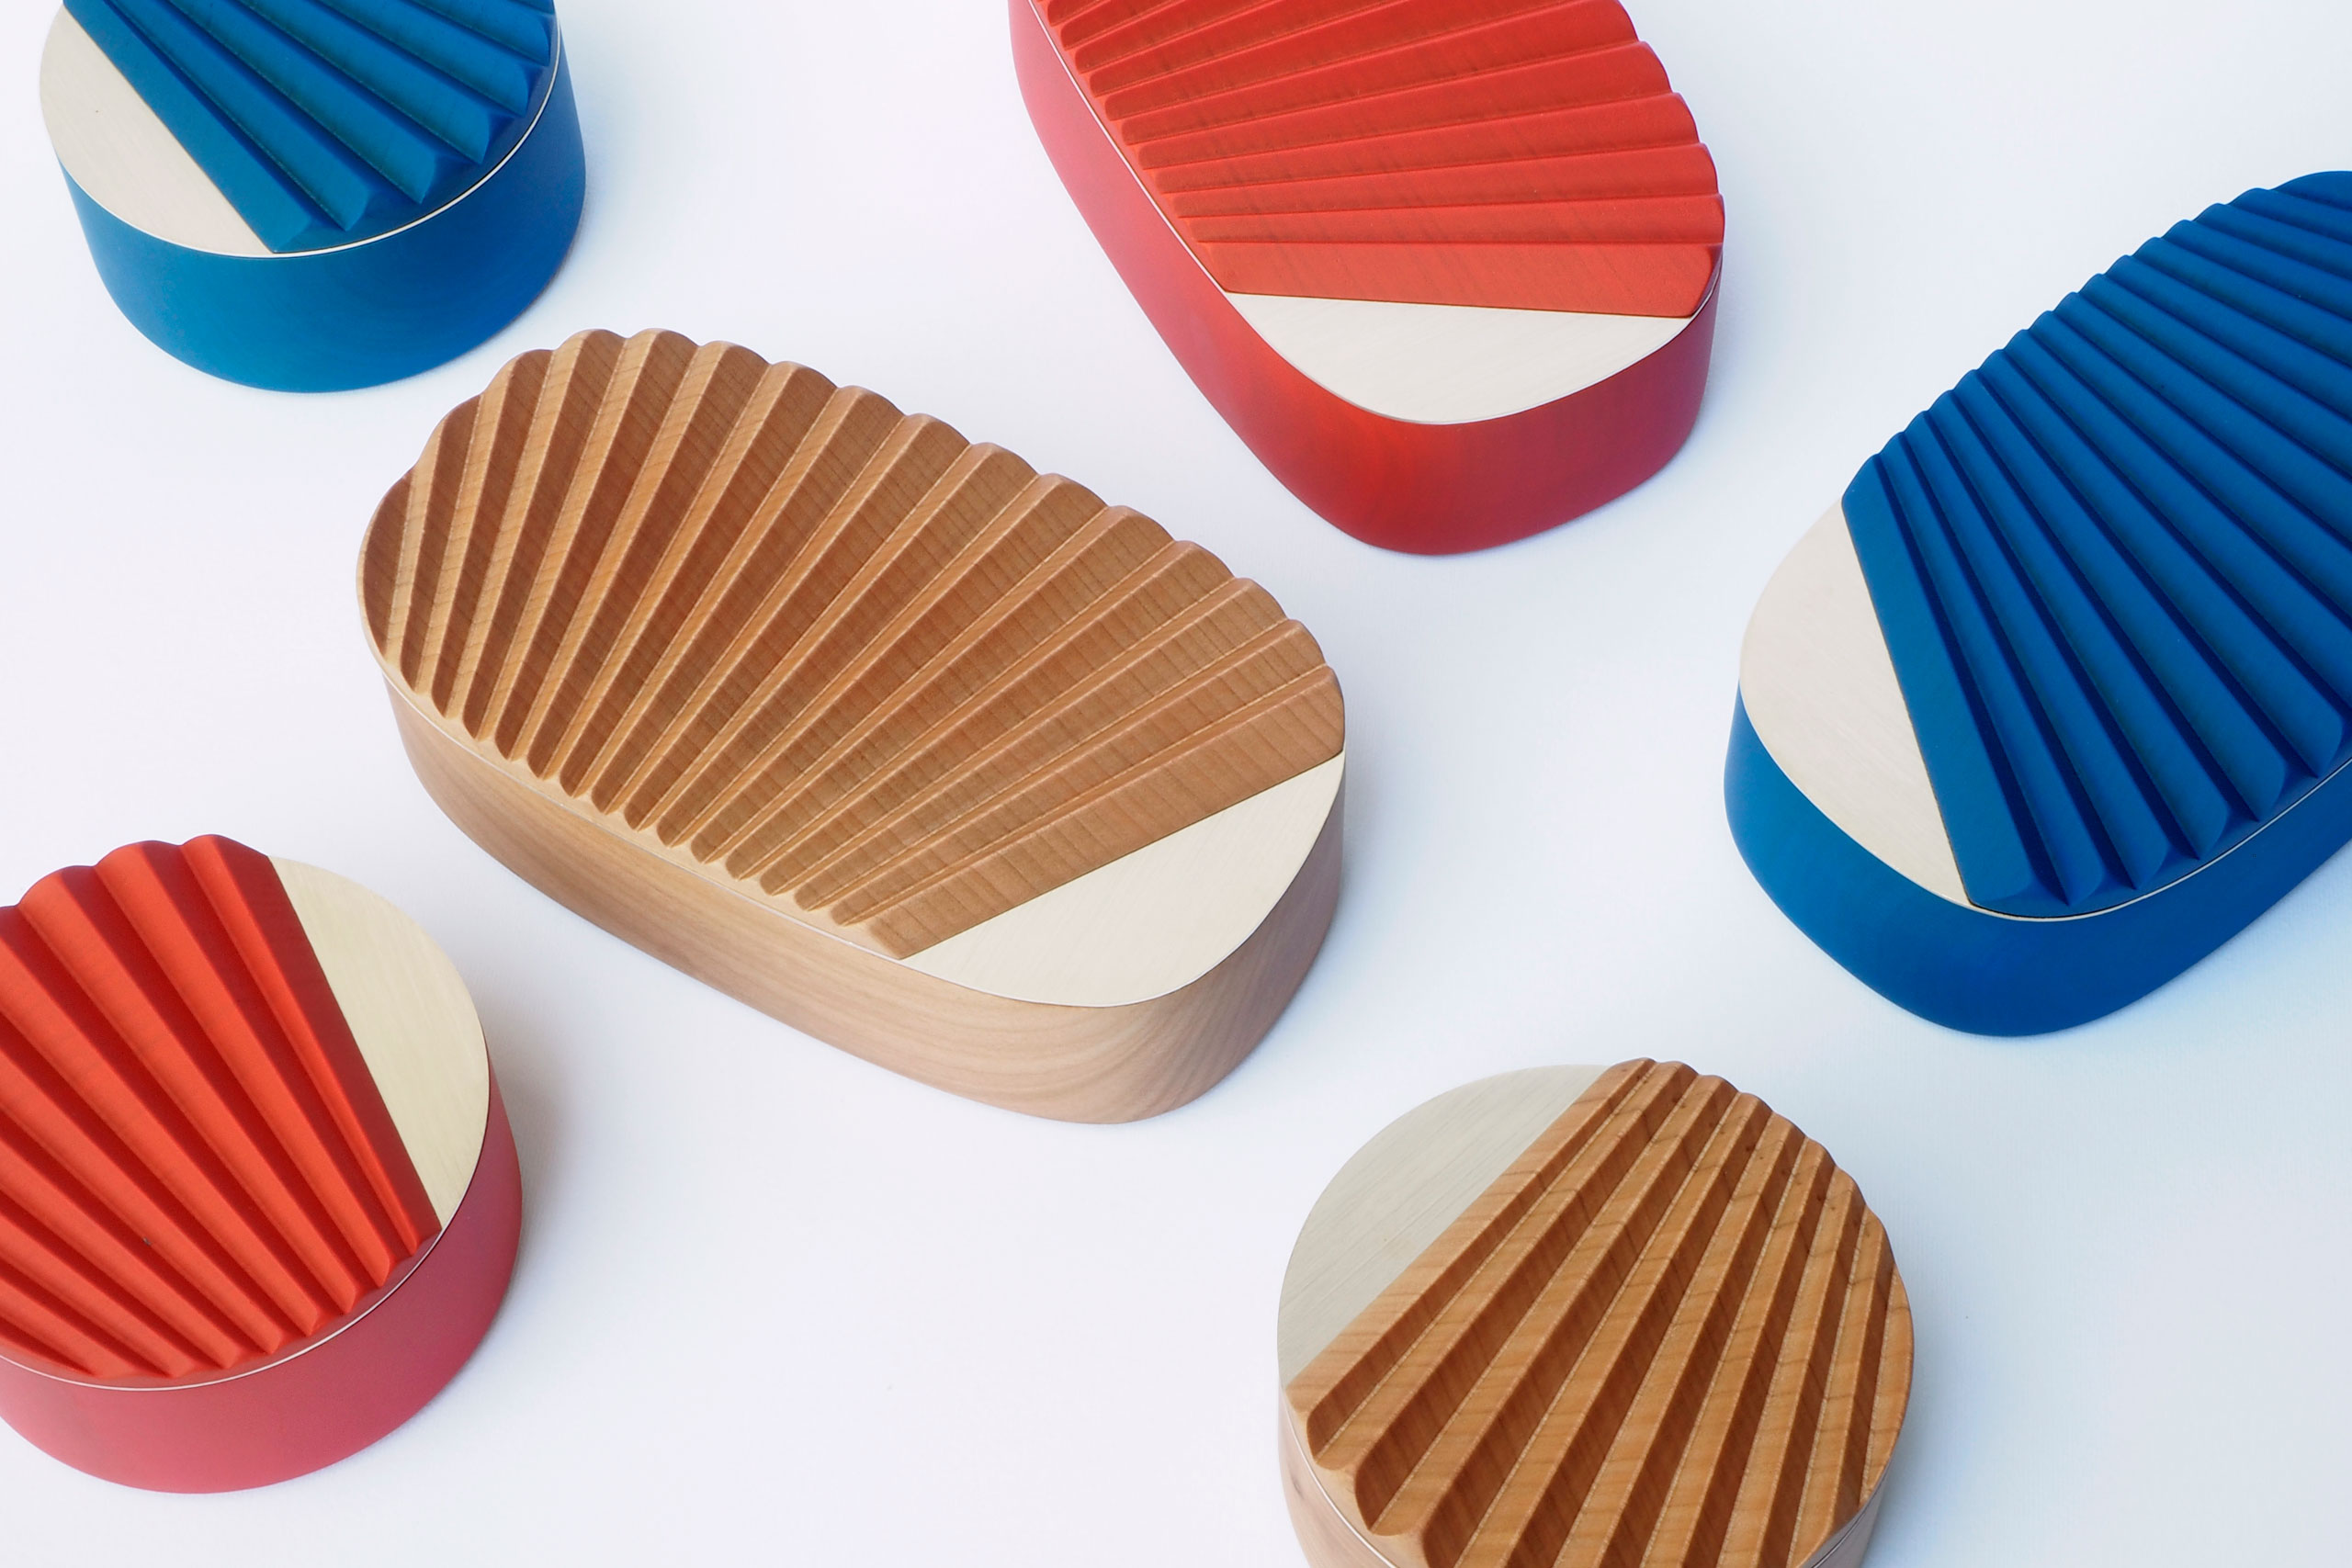 MINIPORTRAIT wooden boxes, designed by Ilaria Innocenti & Giorgio Laboratore for PORTEGO.